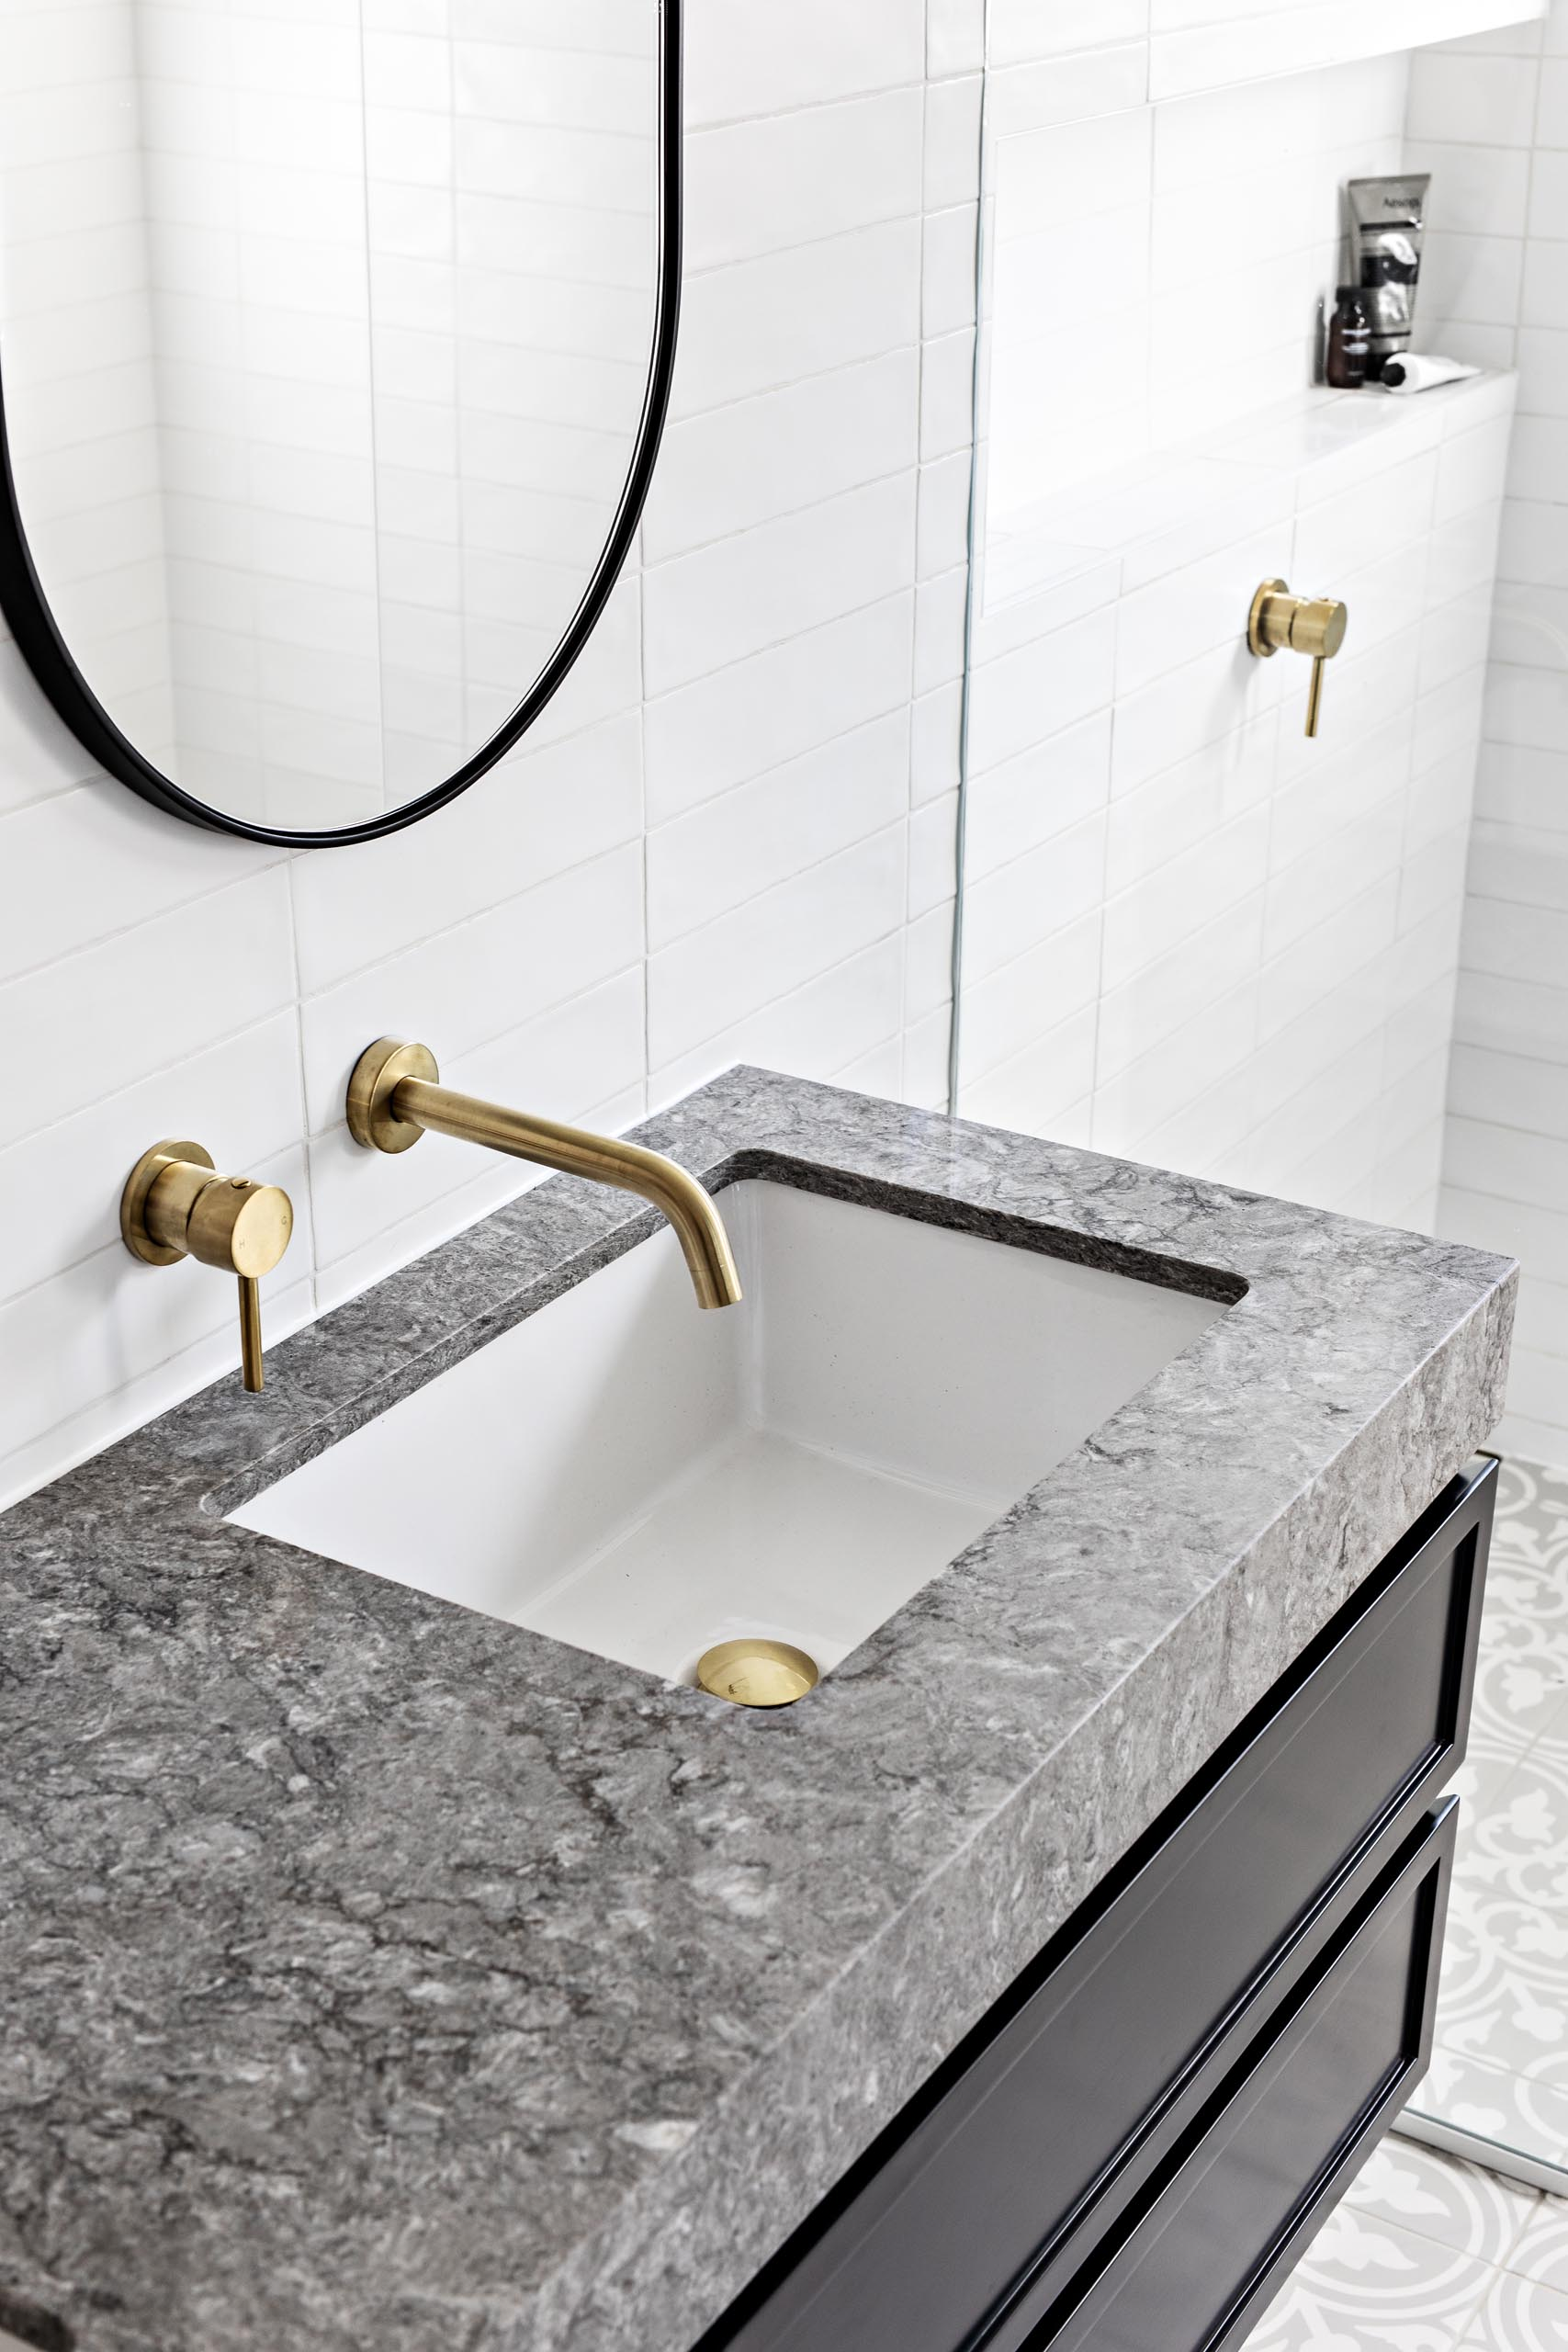 patterned floor tiles, a floating black vanity topped with grey stone, white subway tiles that cover the walls, oval black-framed mirrors, and brass hardware